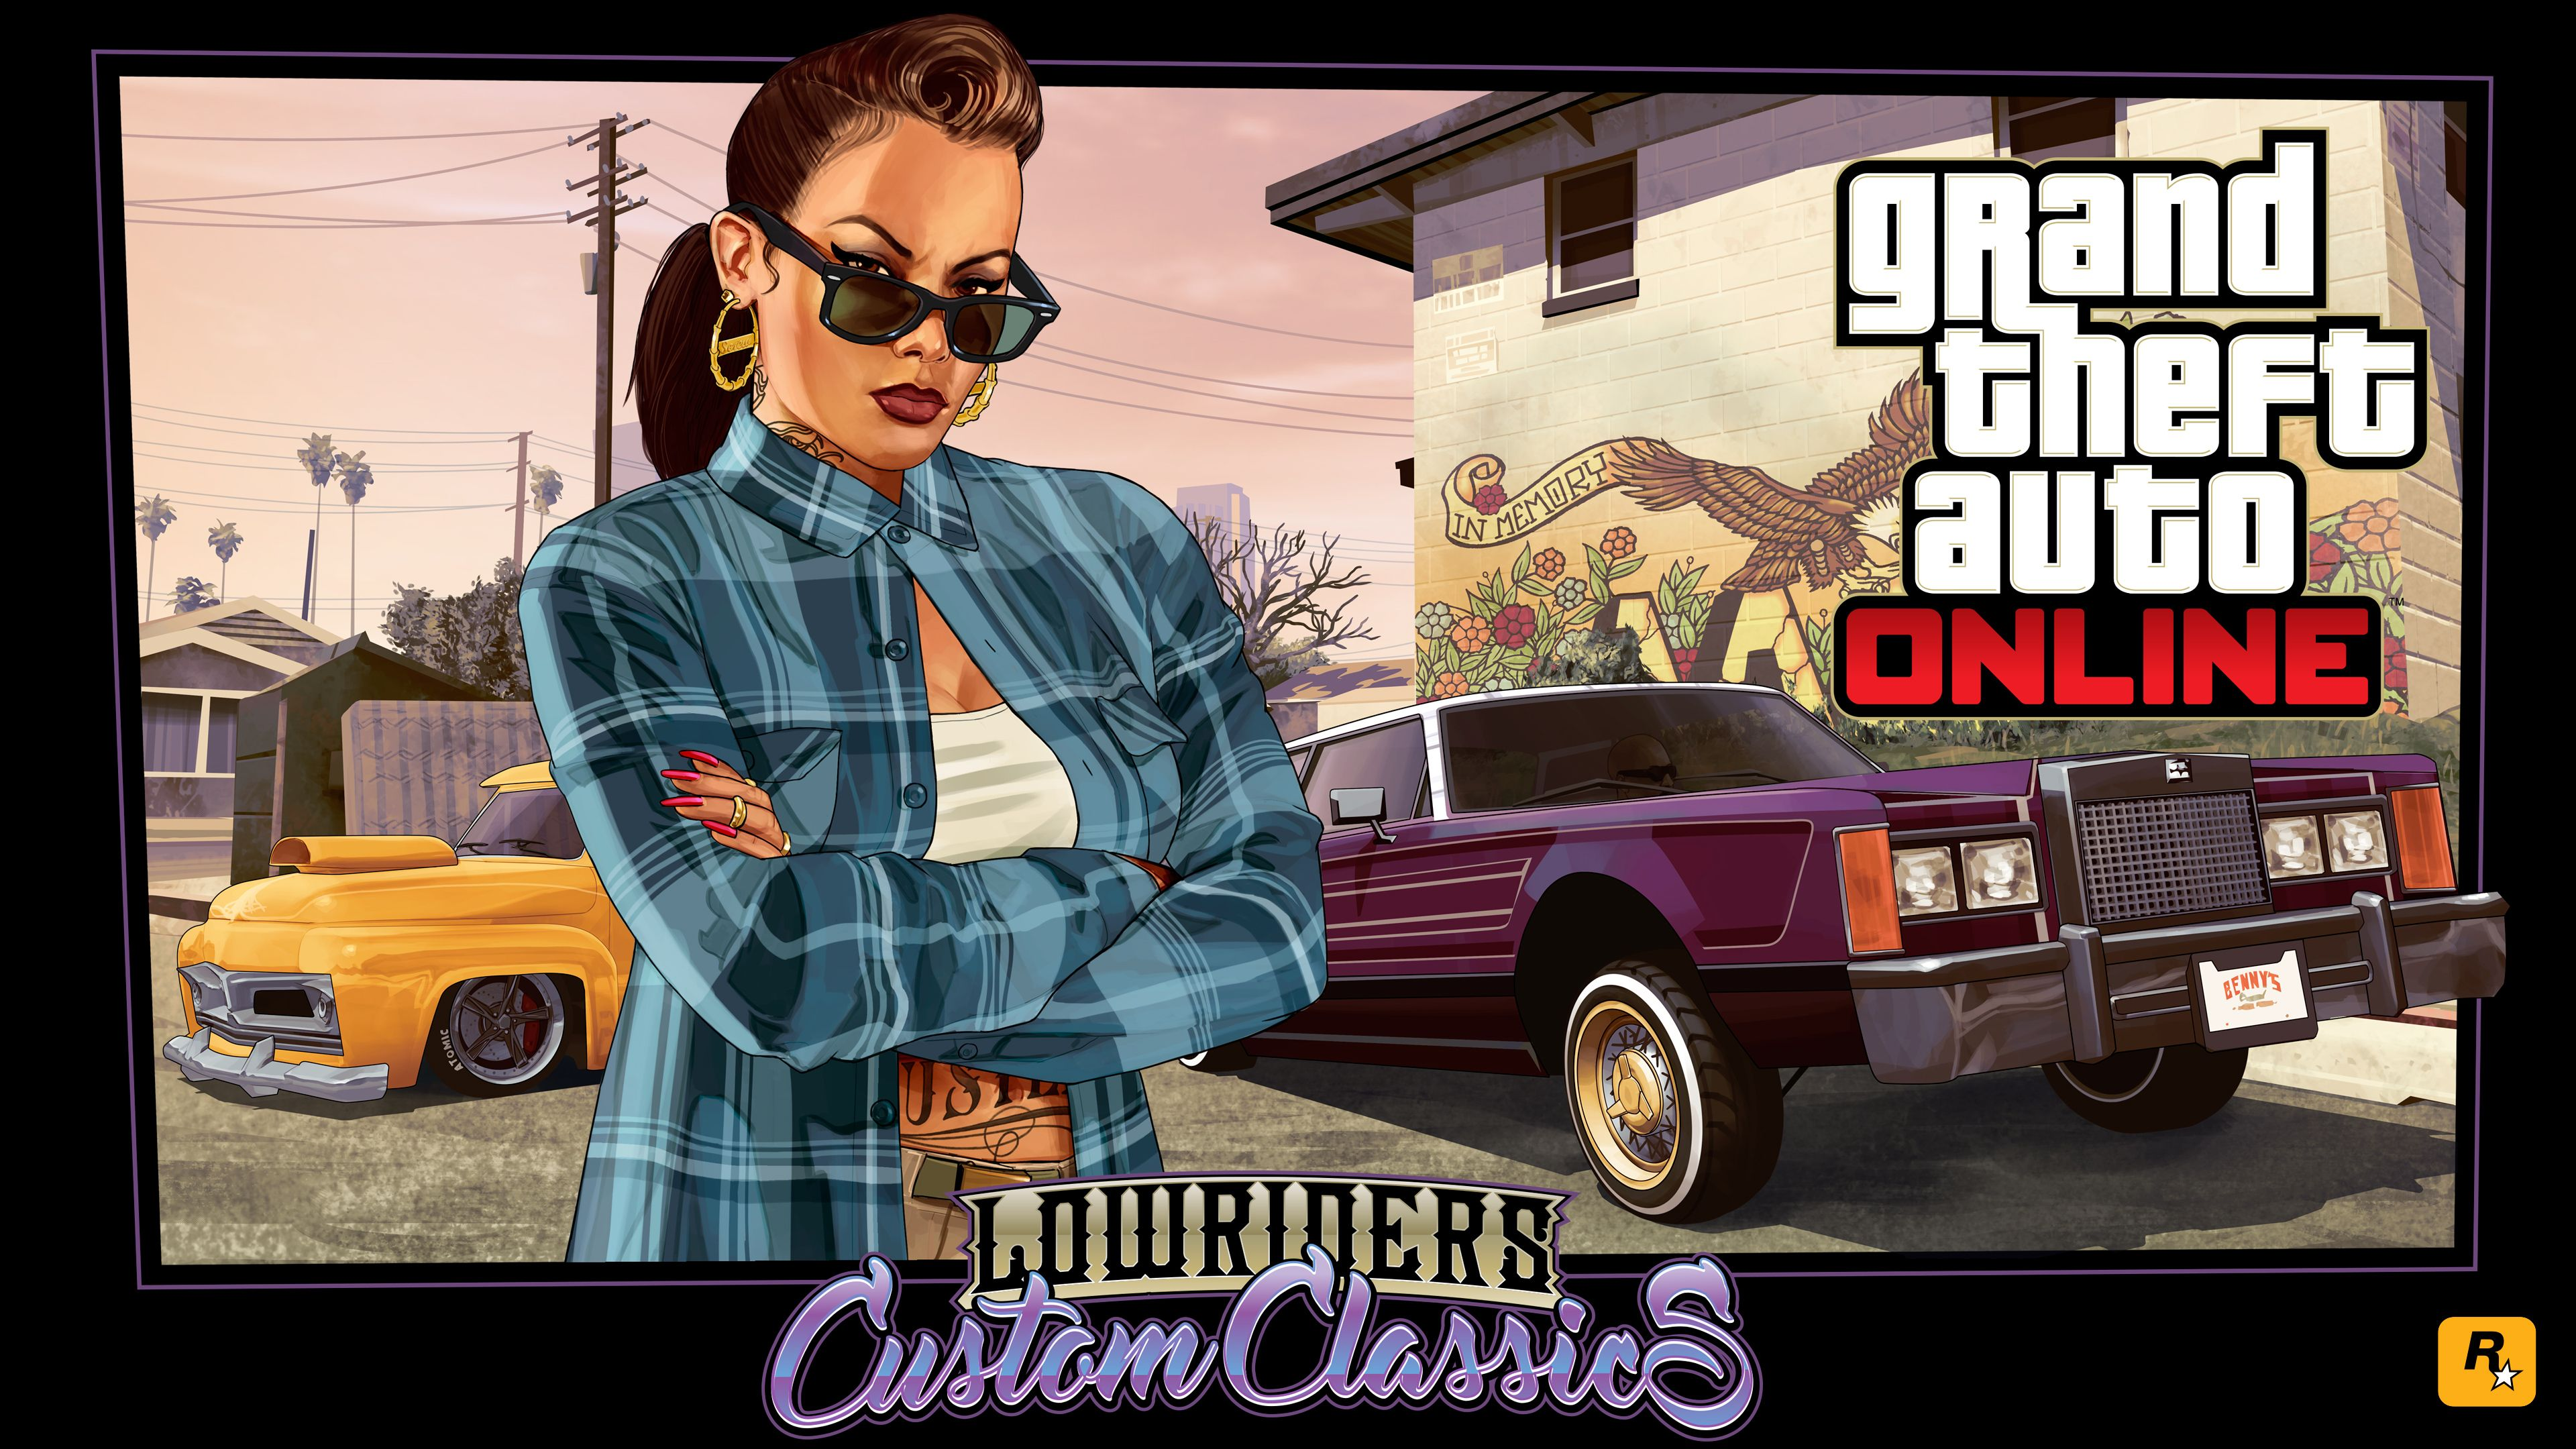 Grand Theft Auto Games Online Free Rockstar Scuribup